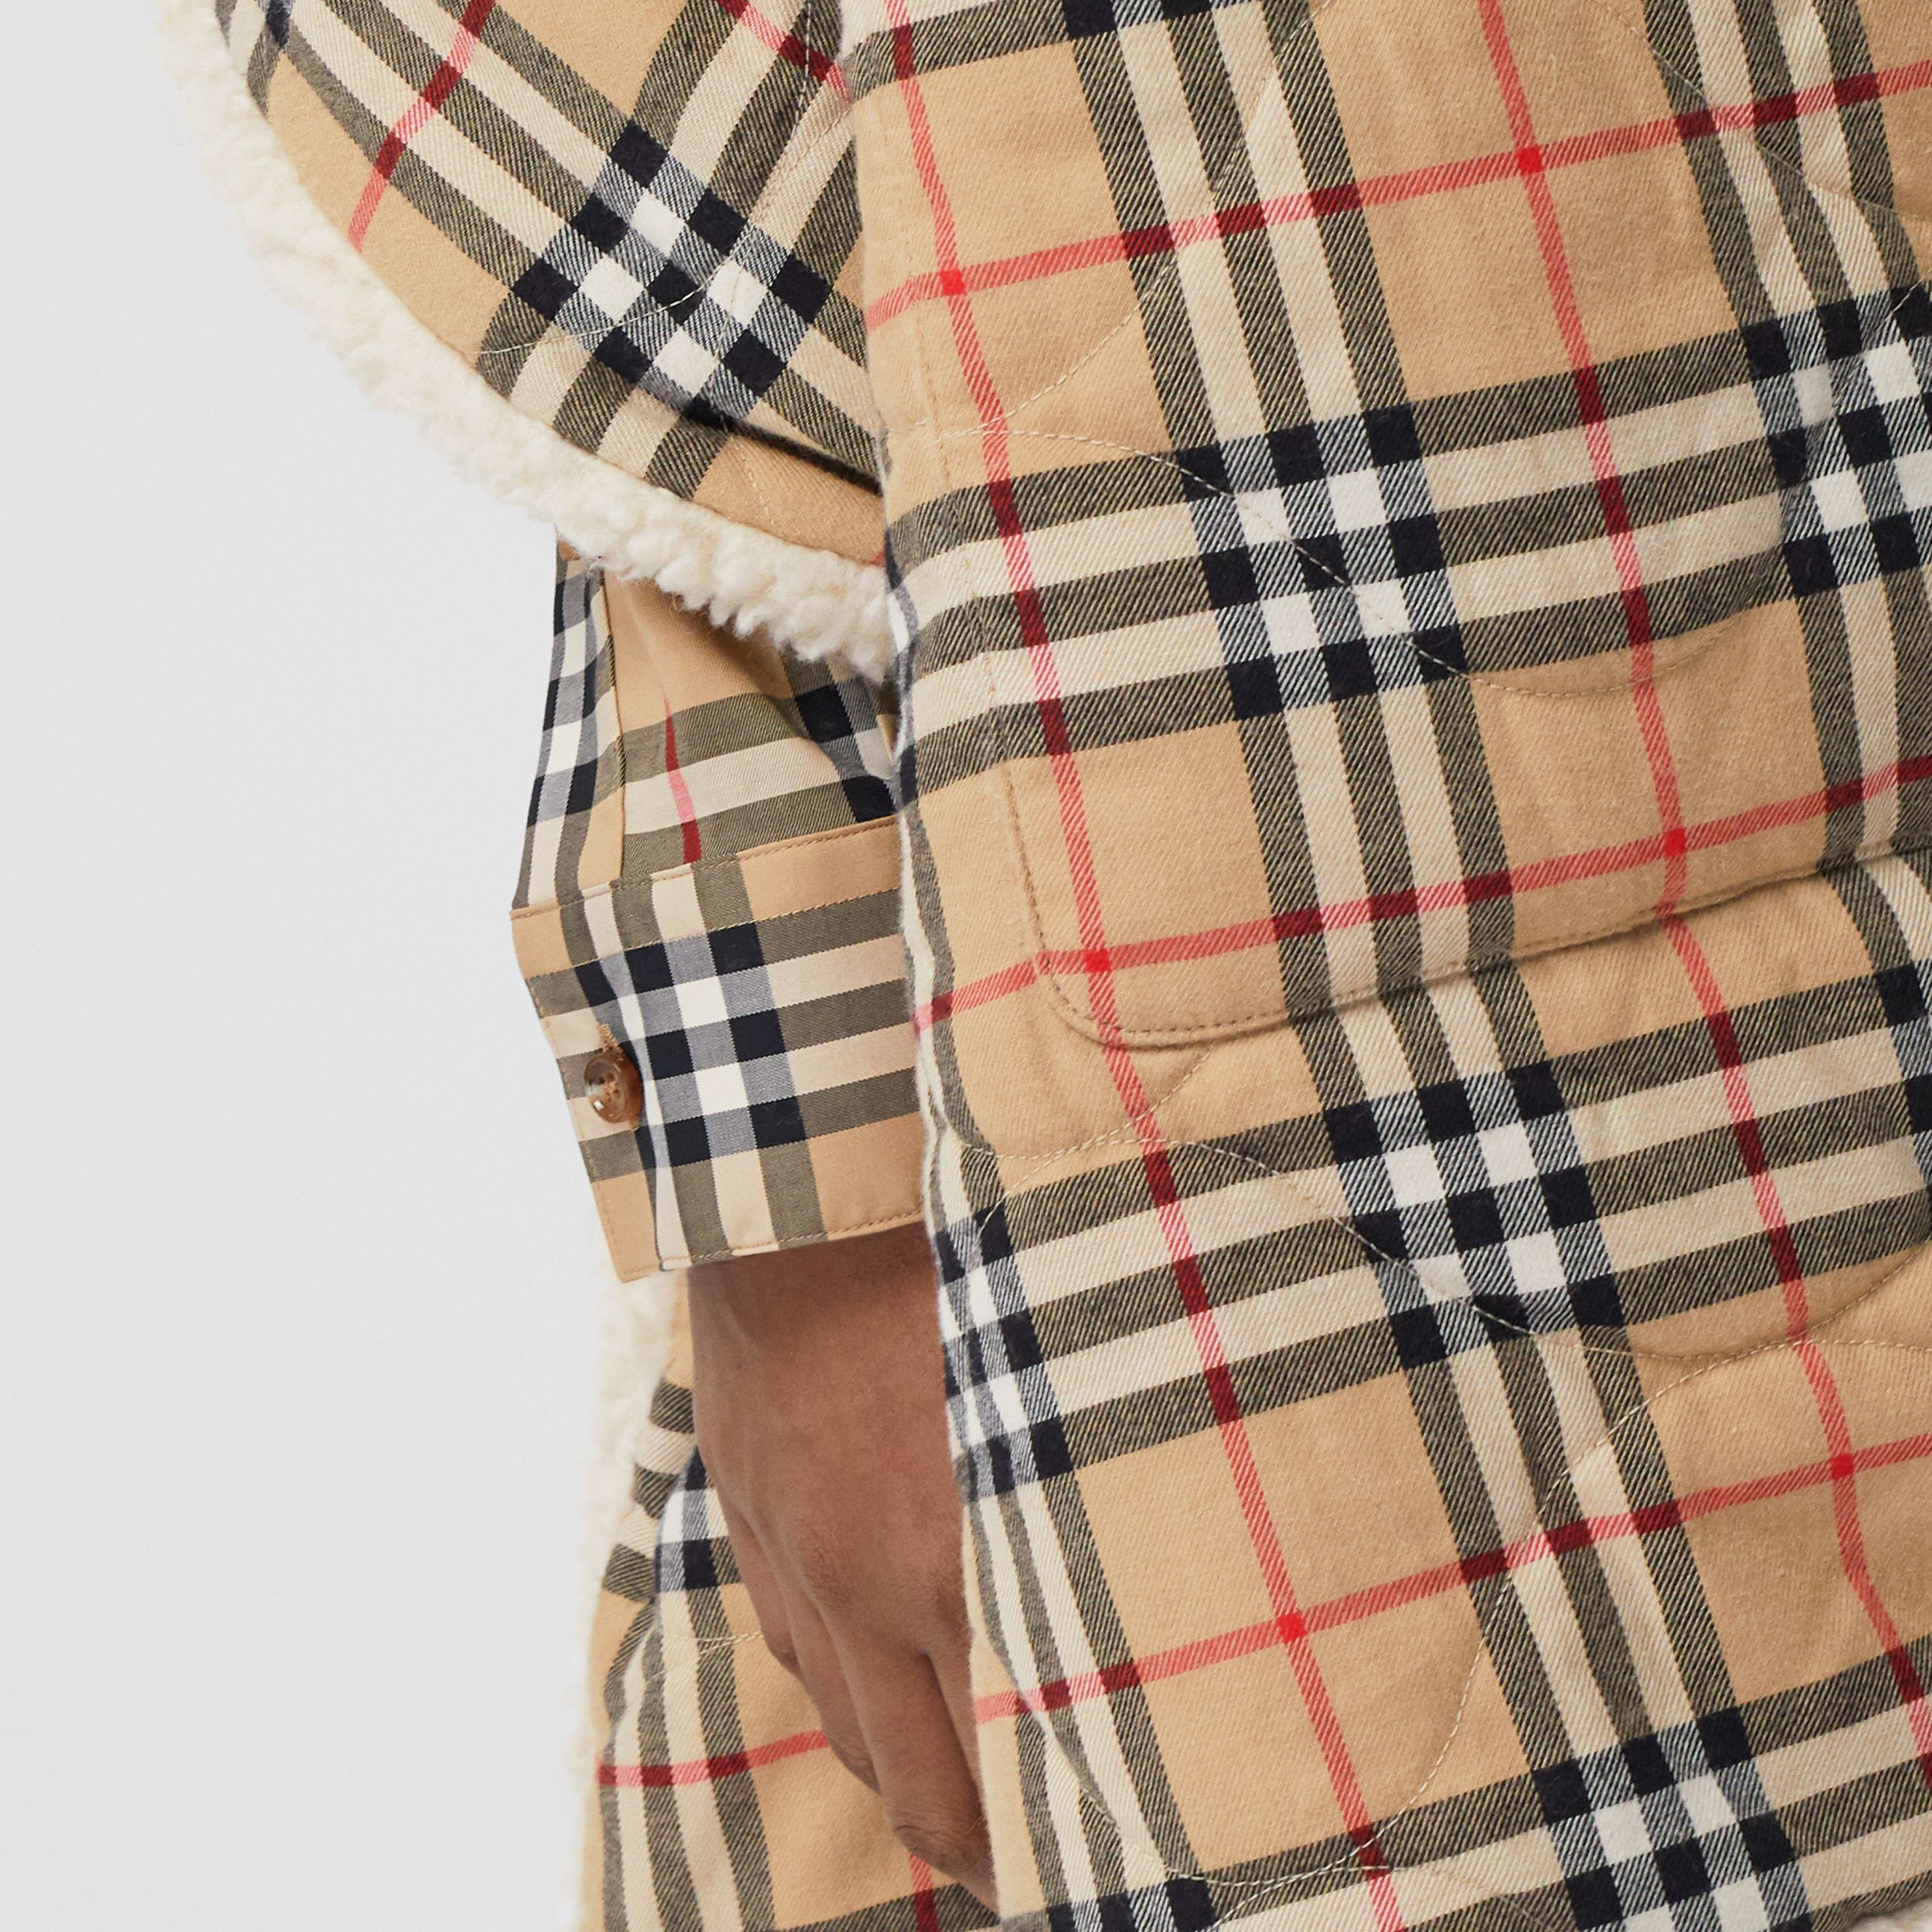 Fleece-lined Vintage Check Cotton Hooded Cape in Camel - Women | Burberry United States - 2